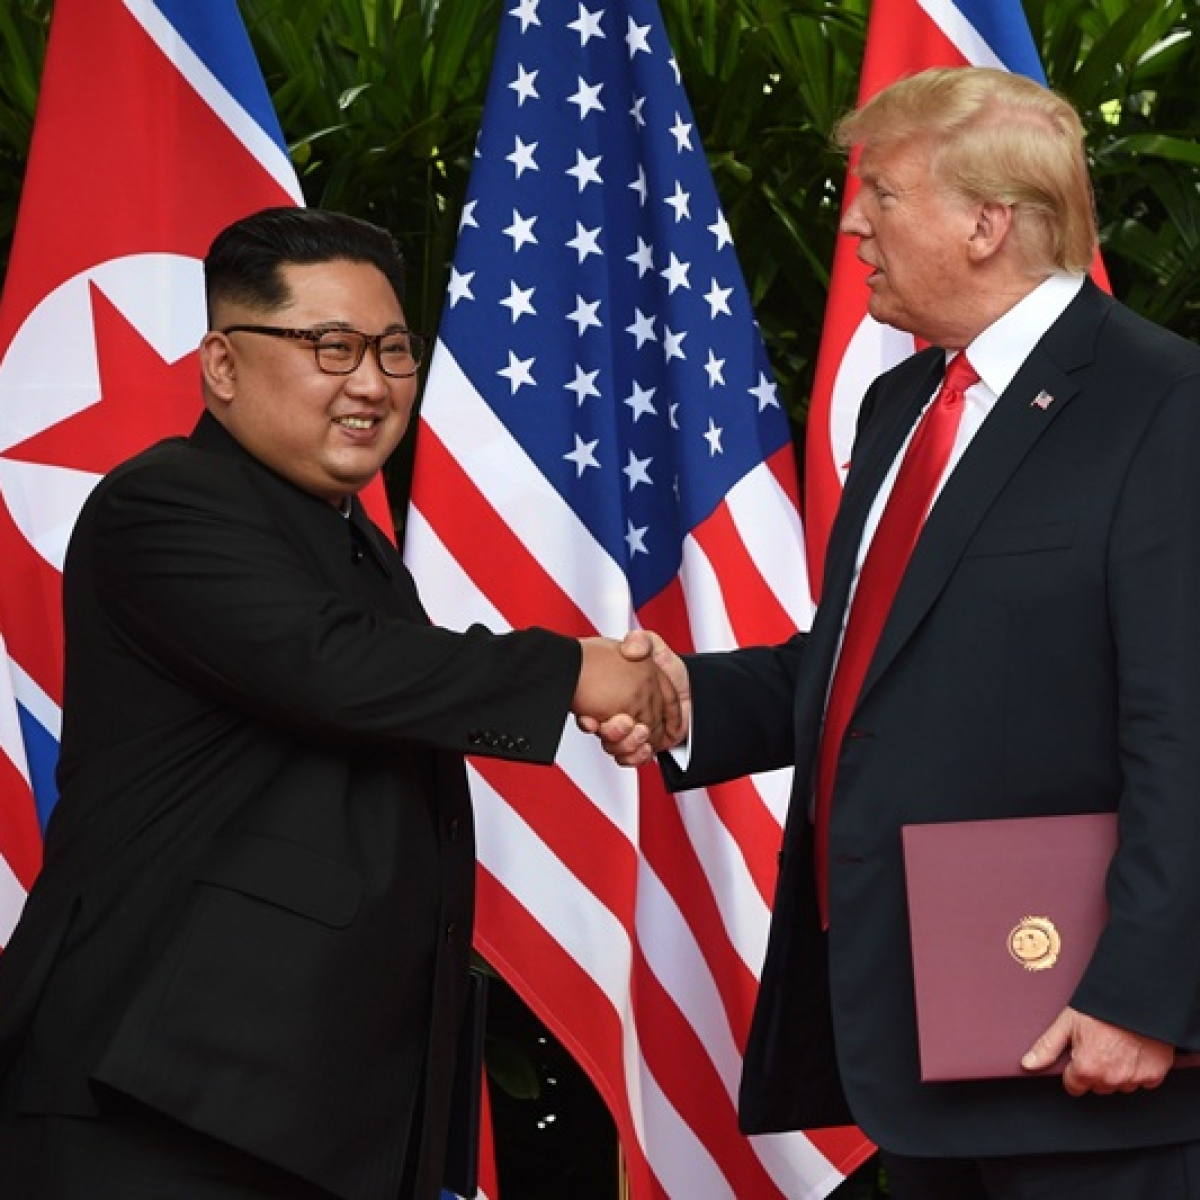 Kim Jong Un-dead: Trump says he is glad to see North Korean leader is 'back and well'